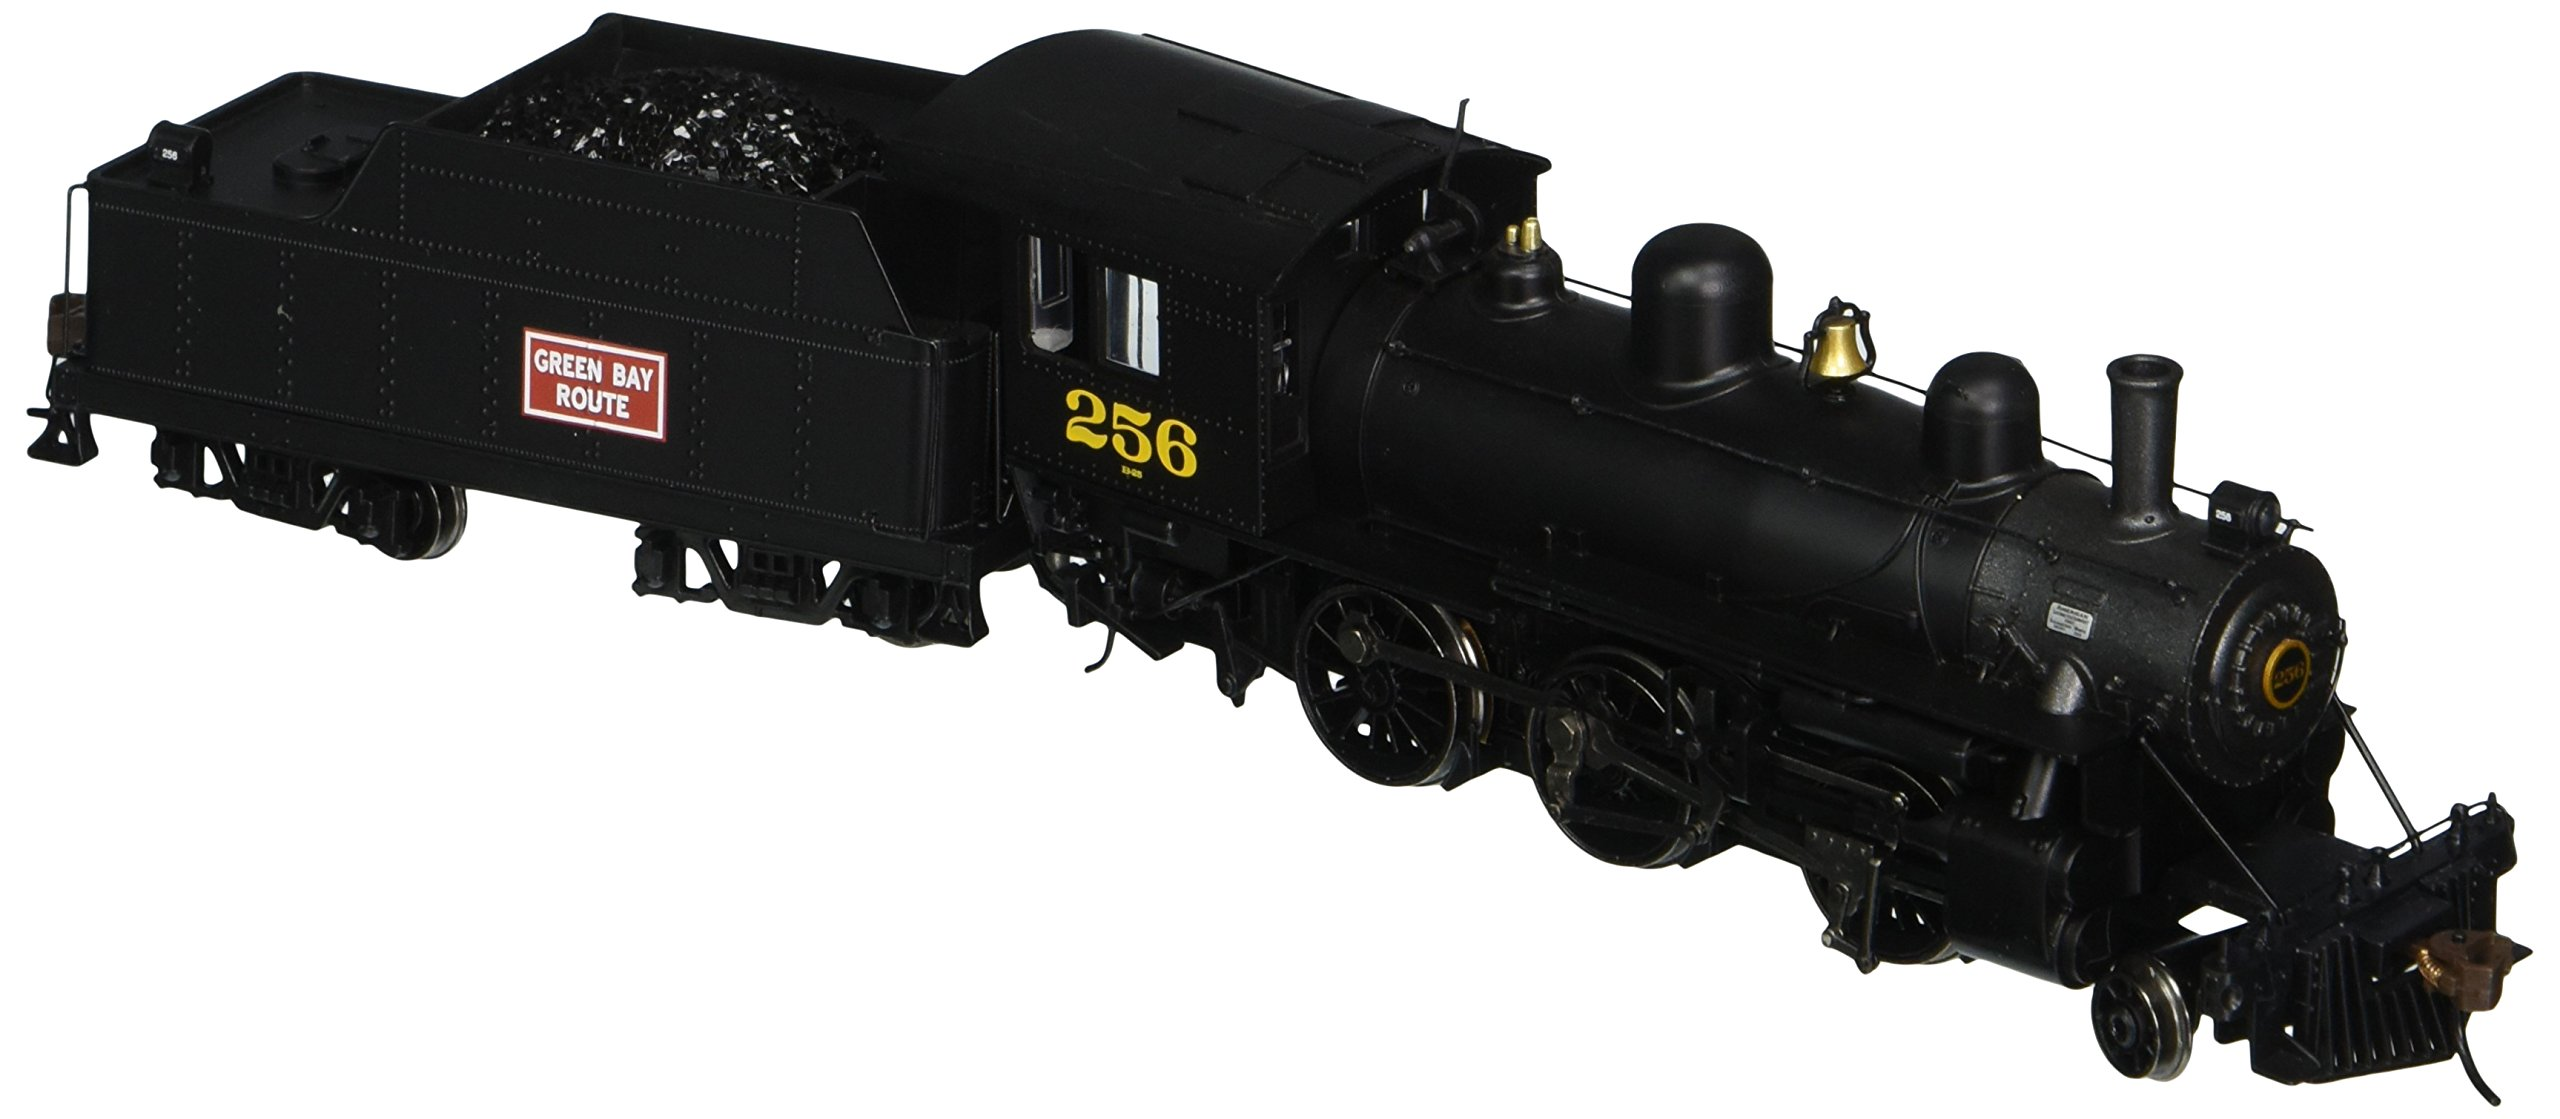 Bachmann Industries Alco 2-6-0 DCC Ready Locomotive - GREEN BAY & WESTERN #256 - (1:87 HO Scale)